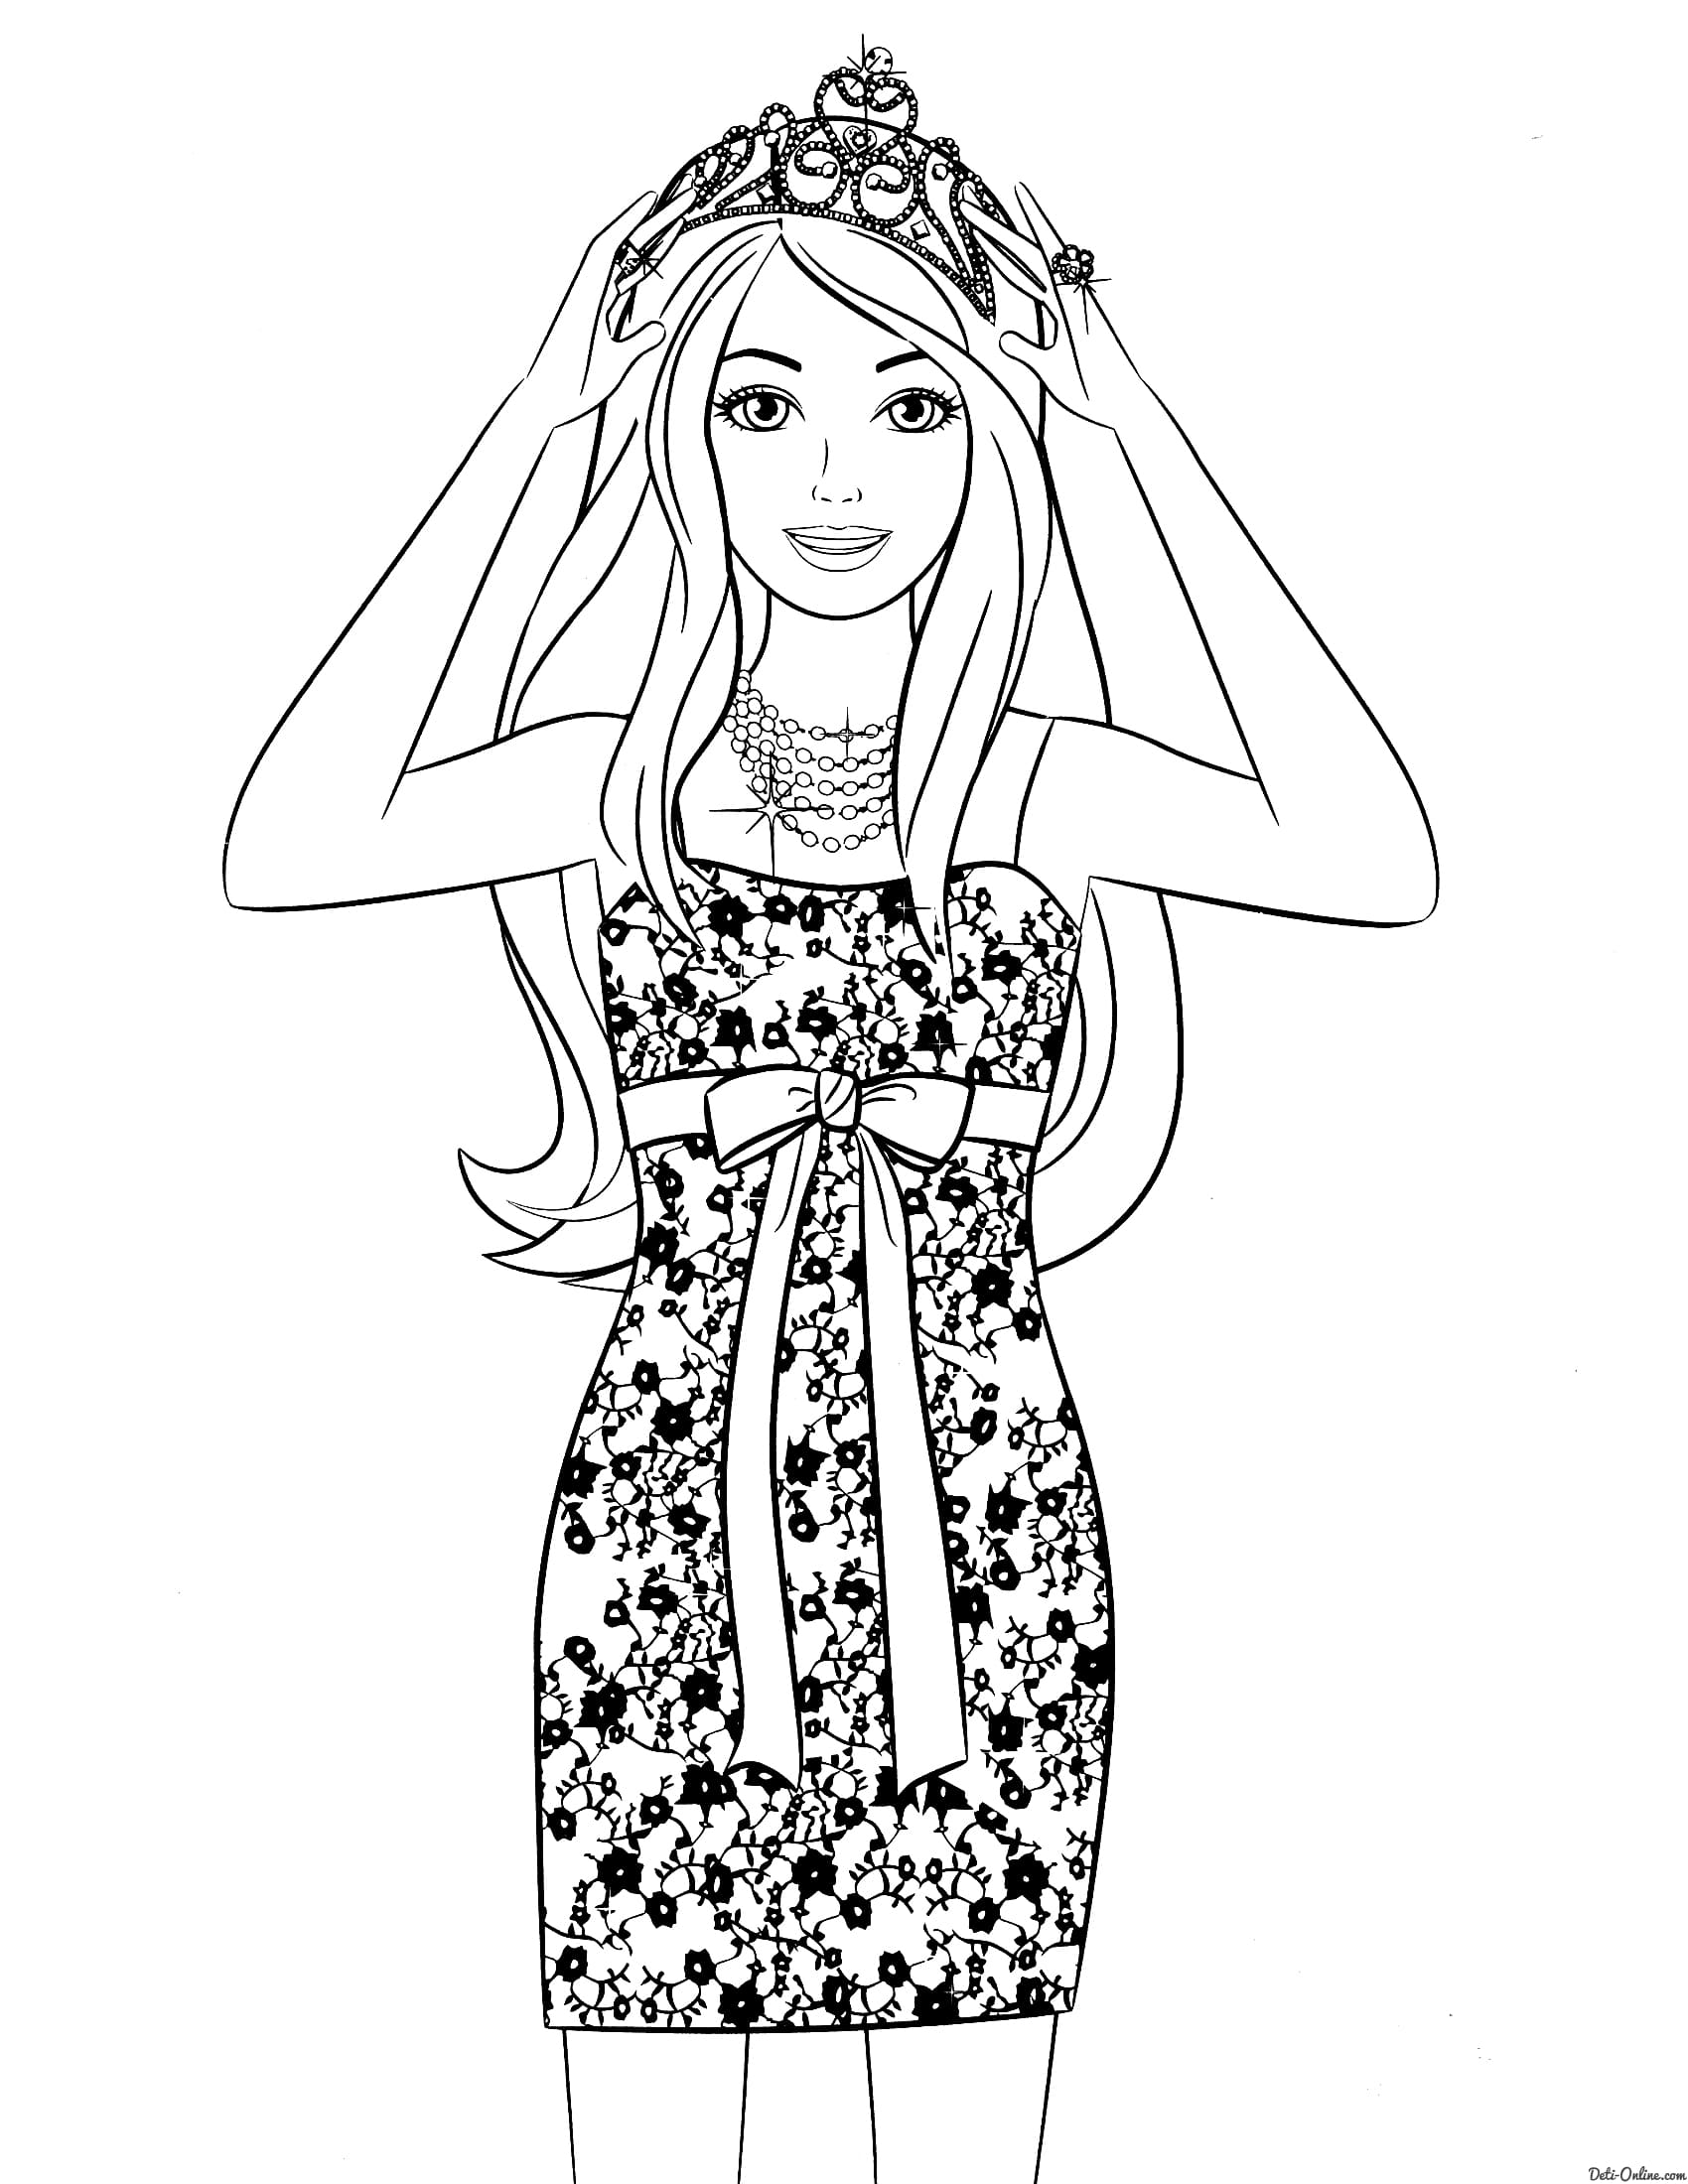 Coloring Pages Dresses - Coloring Home | 2200x1700